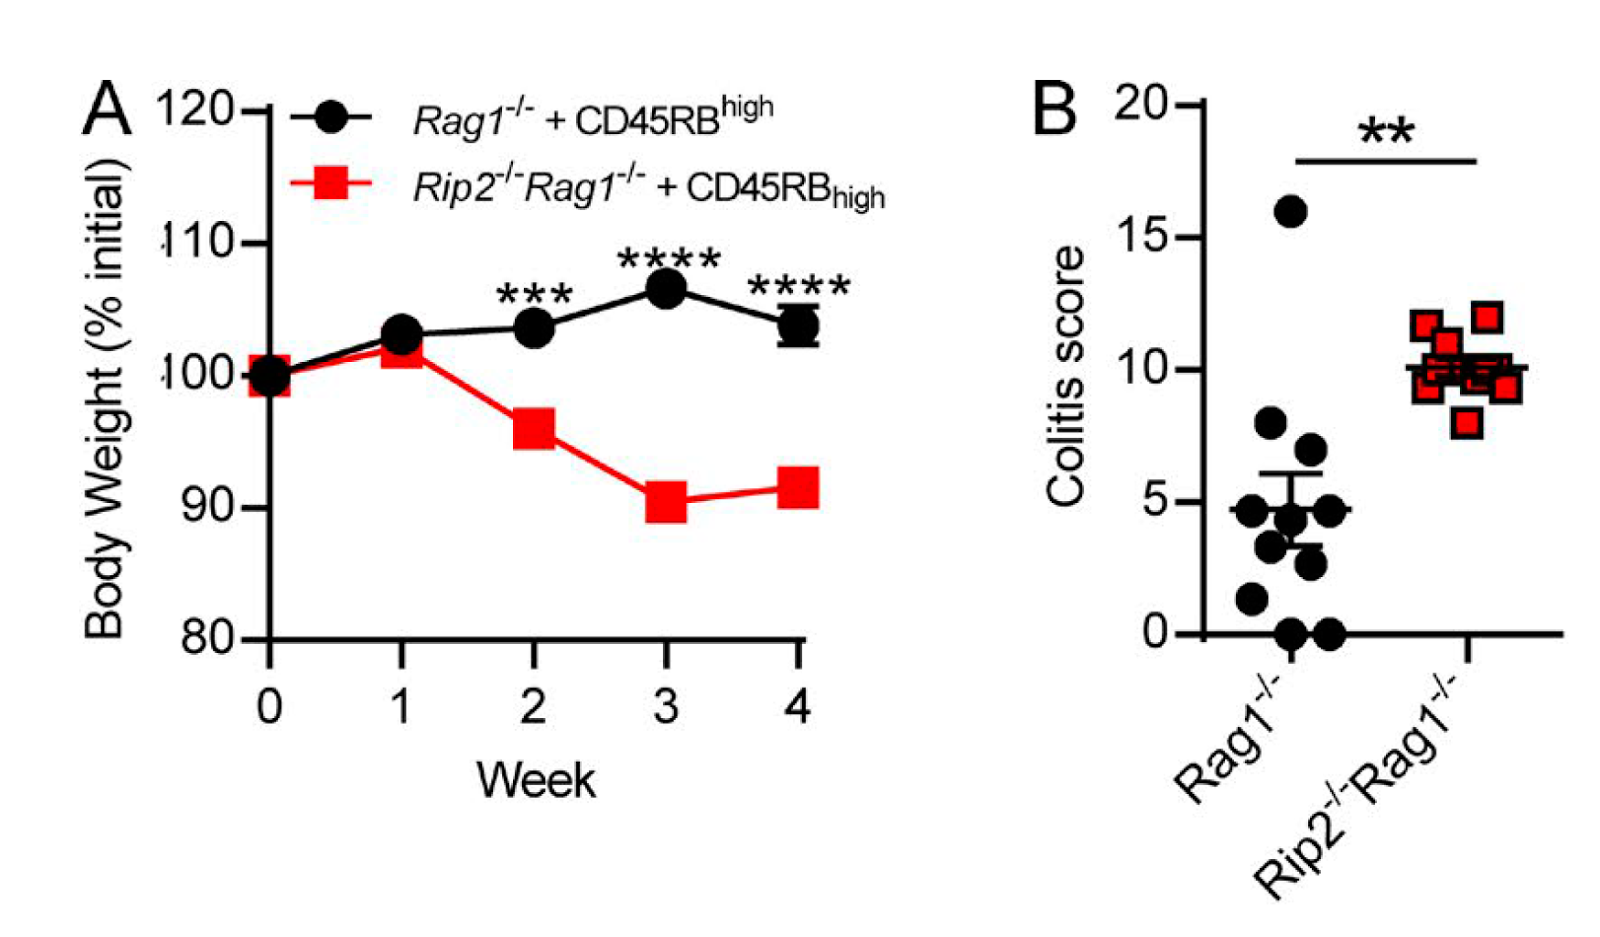 hight resolution of interestingly colitis in rip2 rag1 hosts could not be prevented by co transfer of foxp3 t regs